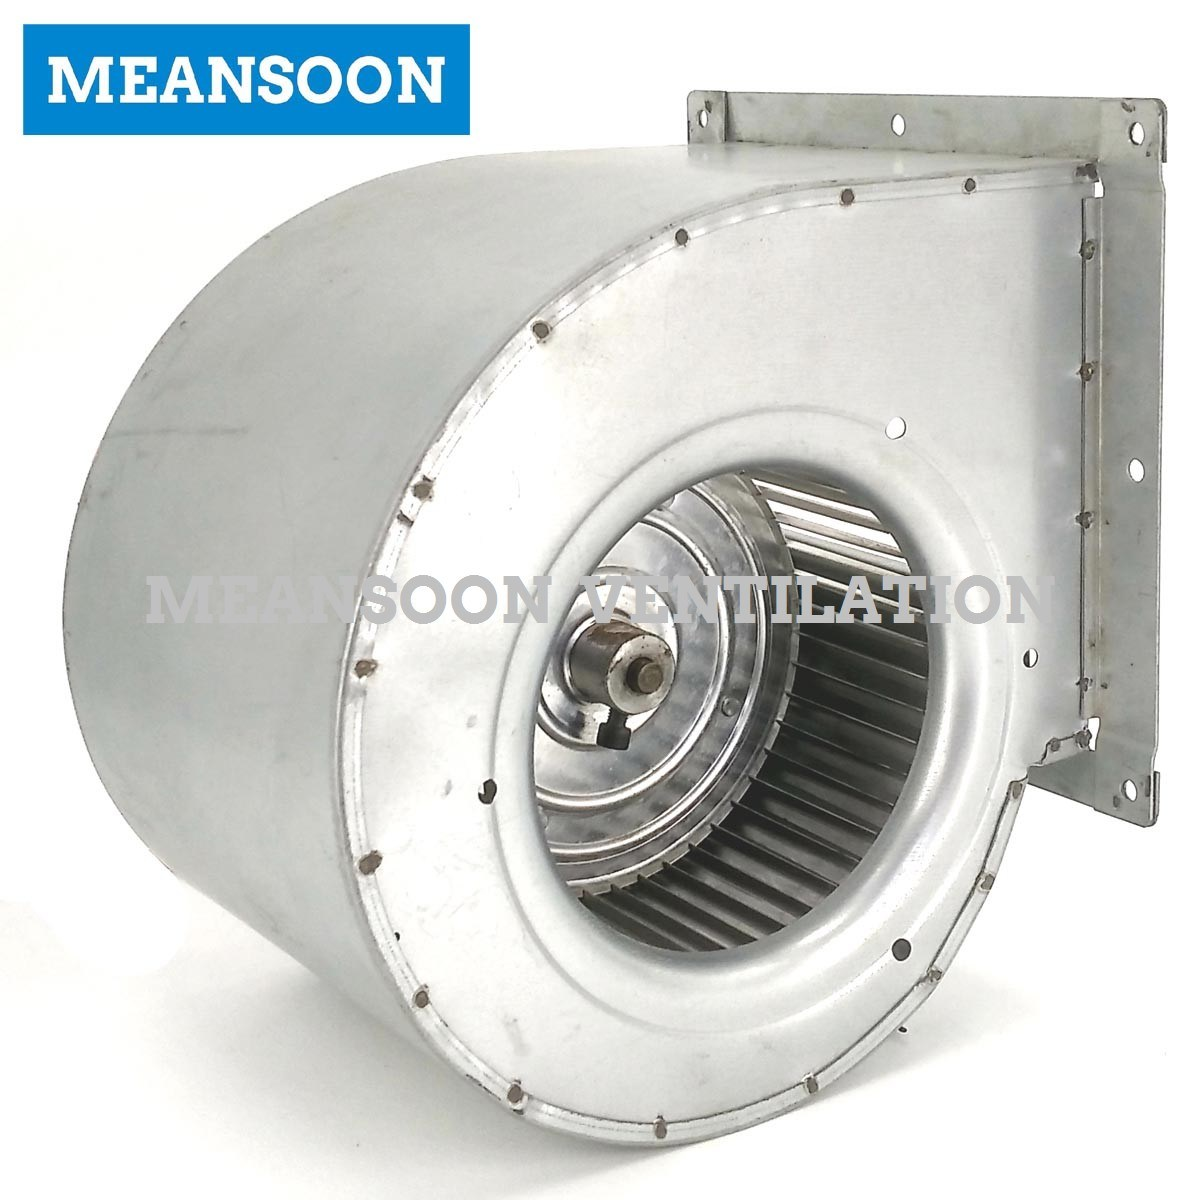 12-12 Double Inlet Centrifugal Ventilator for Air Conditioning Exhaust Ventilation